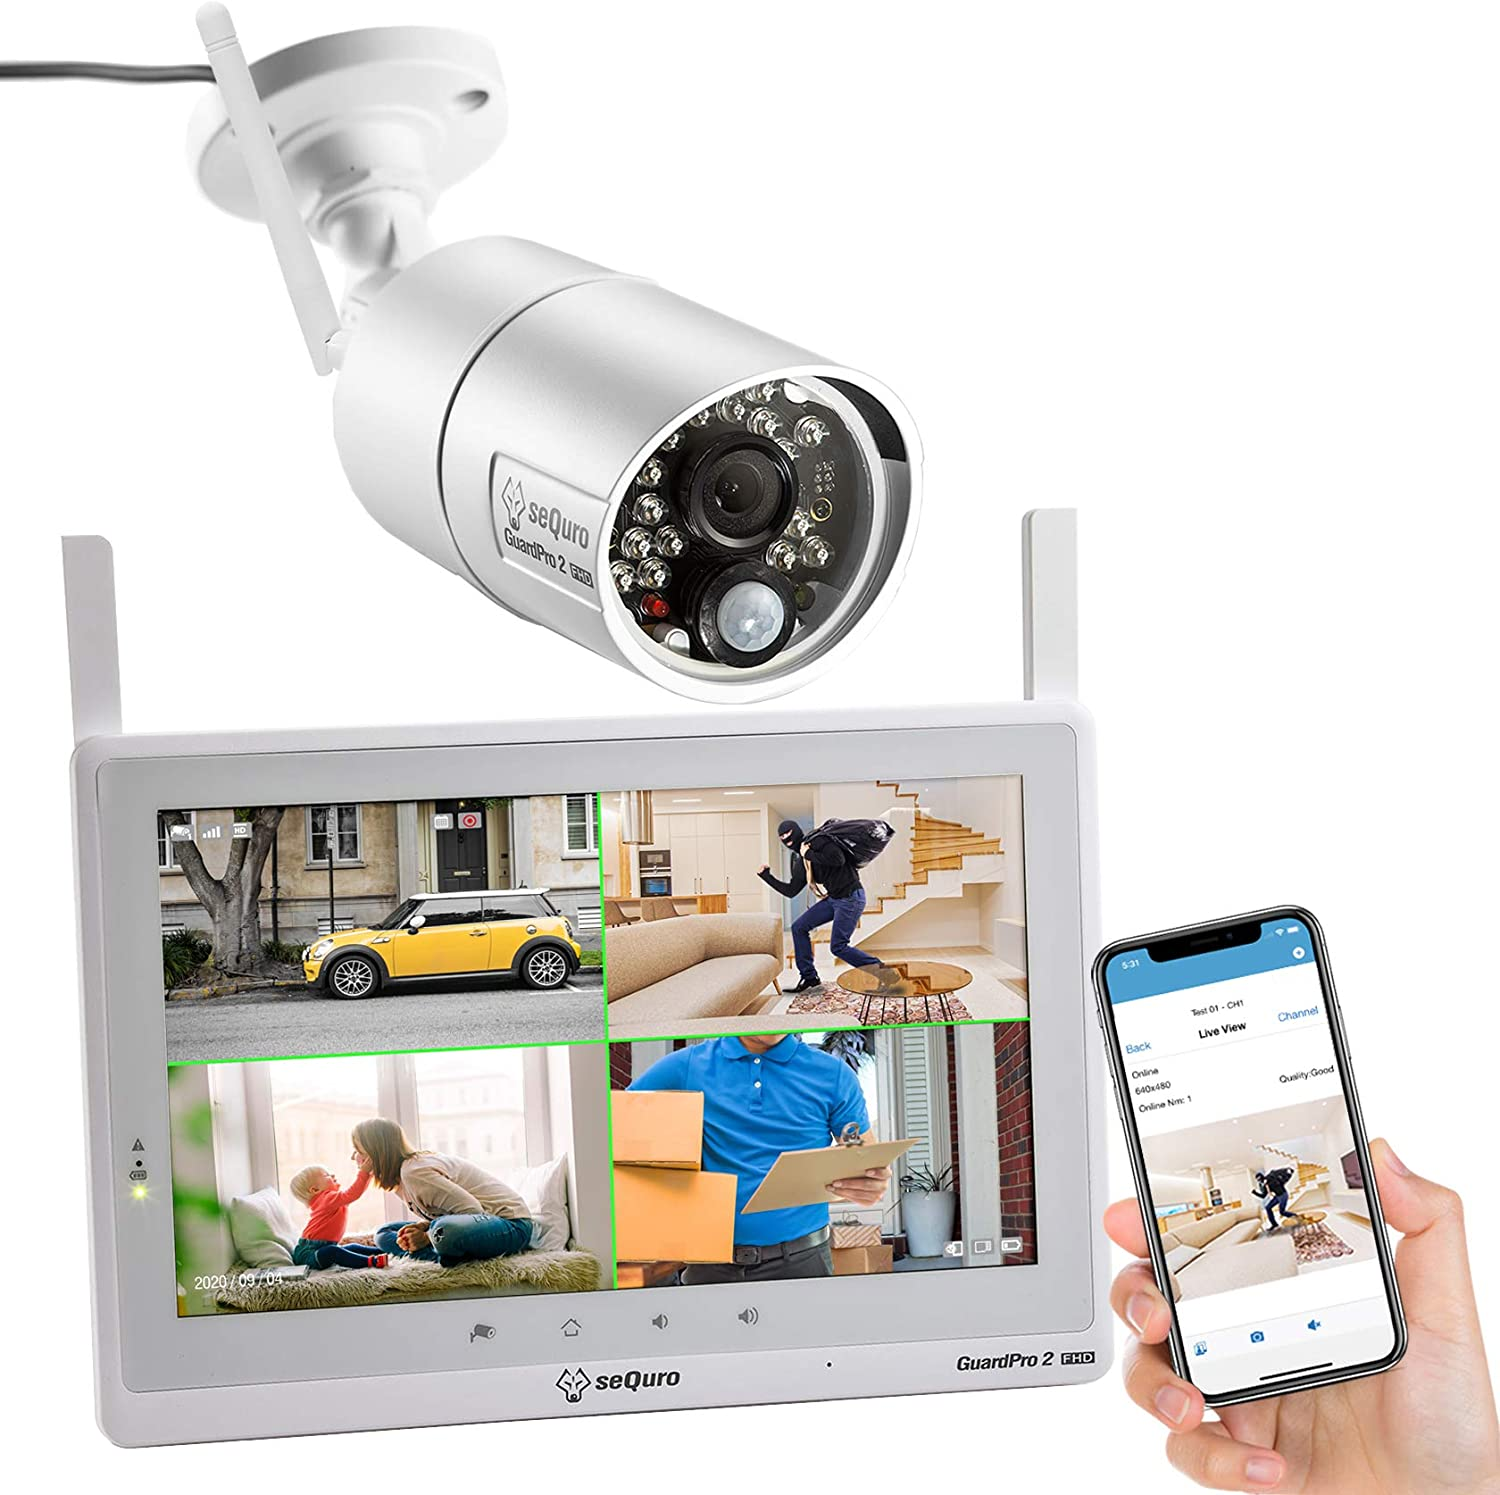 Amazon Com Sequro Wireless Security Camera System With Monitor Guardpro2 Weatherproof Outdoor Night Vision Full Hd 1080p Cam And 10 1 Touchscreen Home Surveillance Dvr Kit With Smartphone Access Hdmi Output Camera